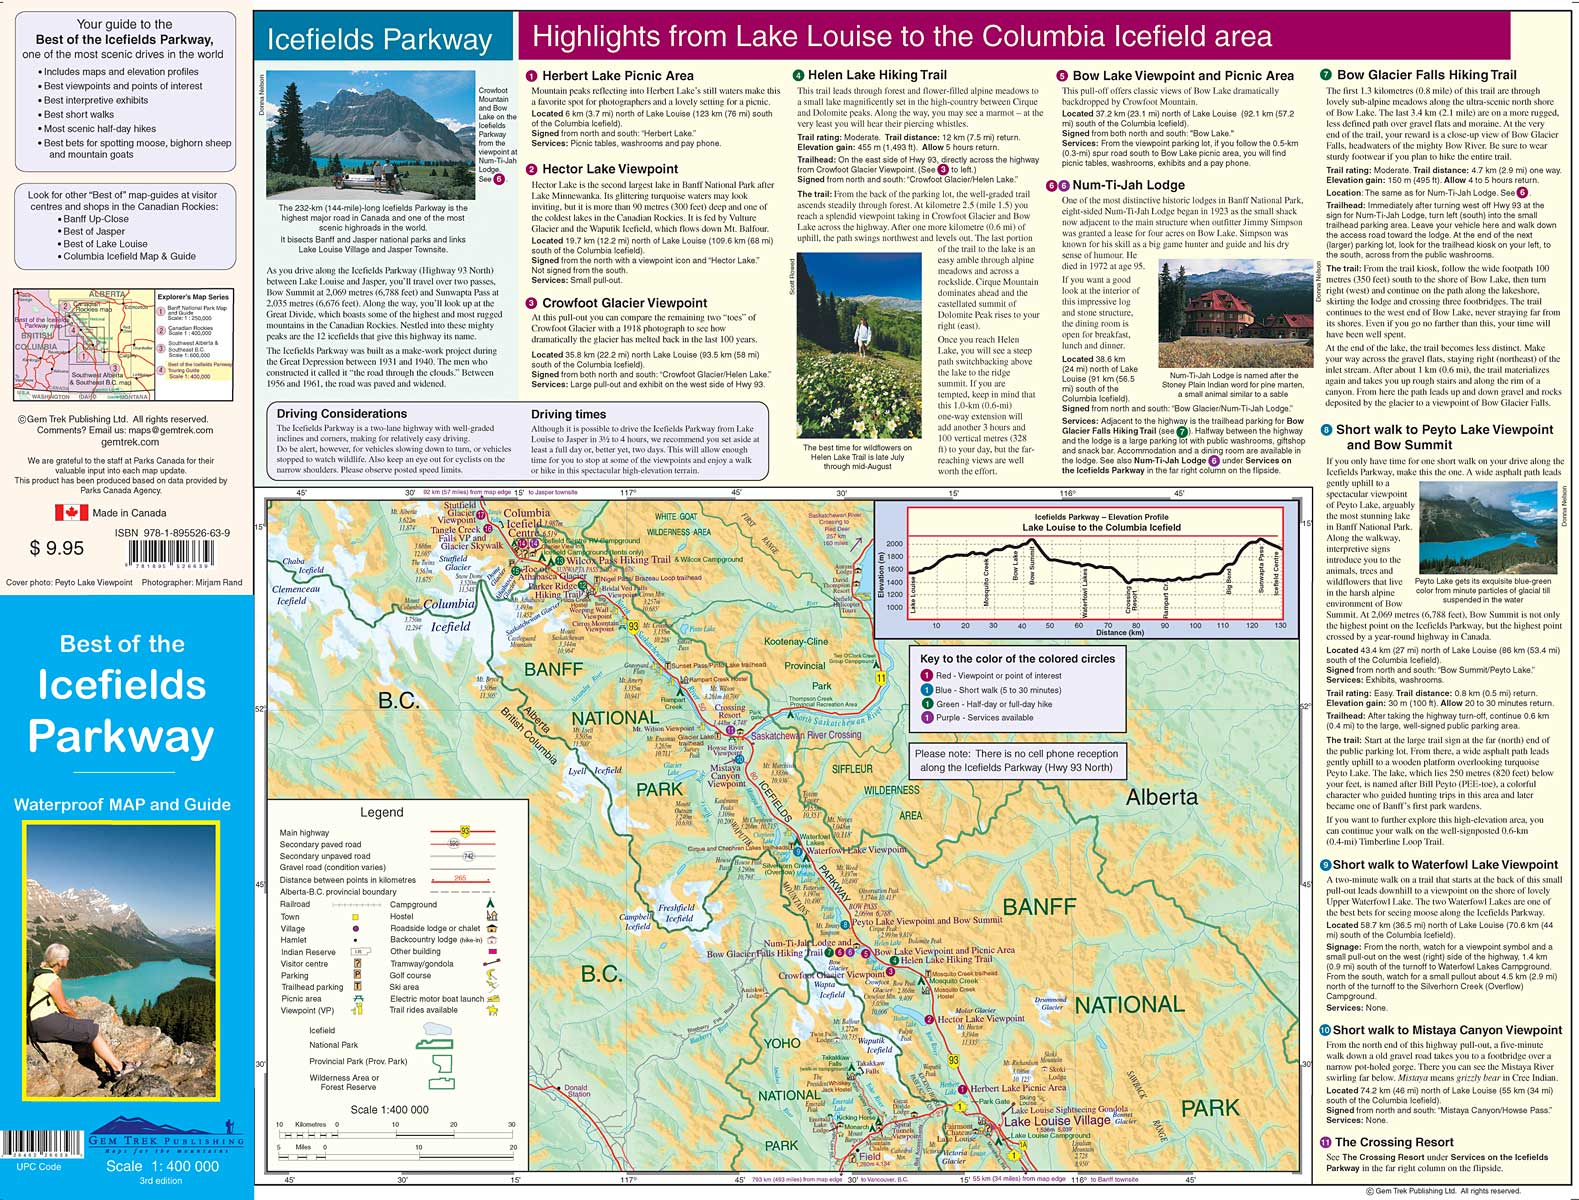 Icefields Parkway Map Best of the Icefields Parkway Map